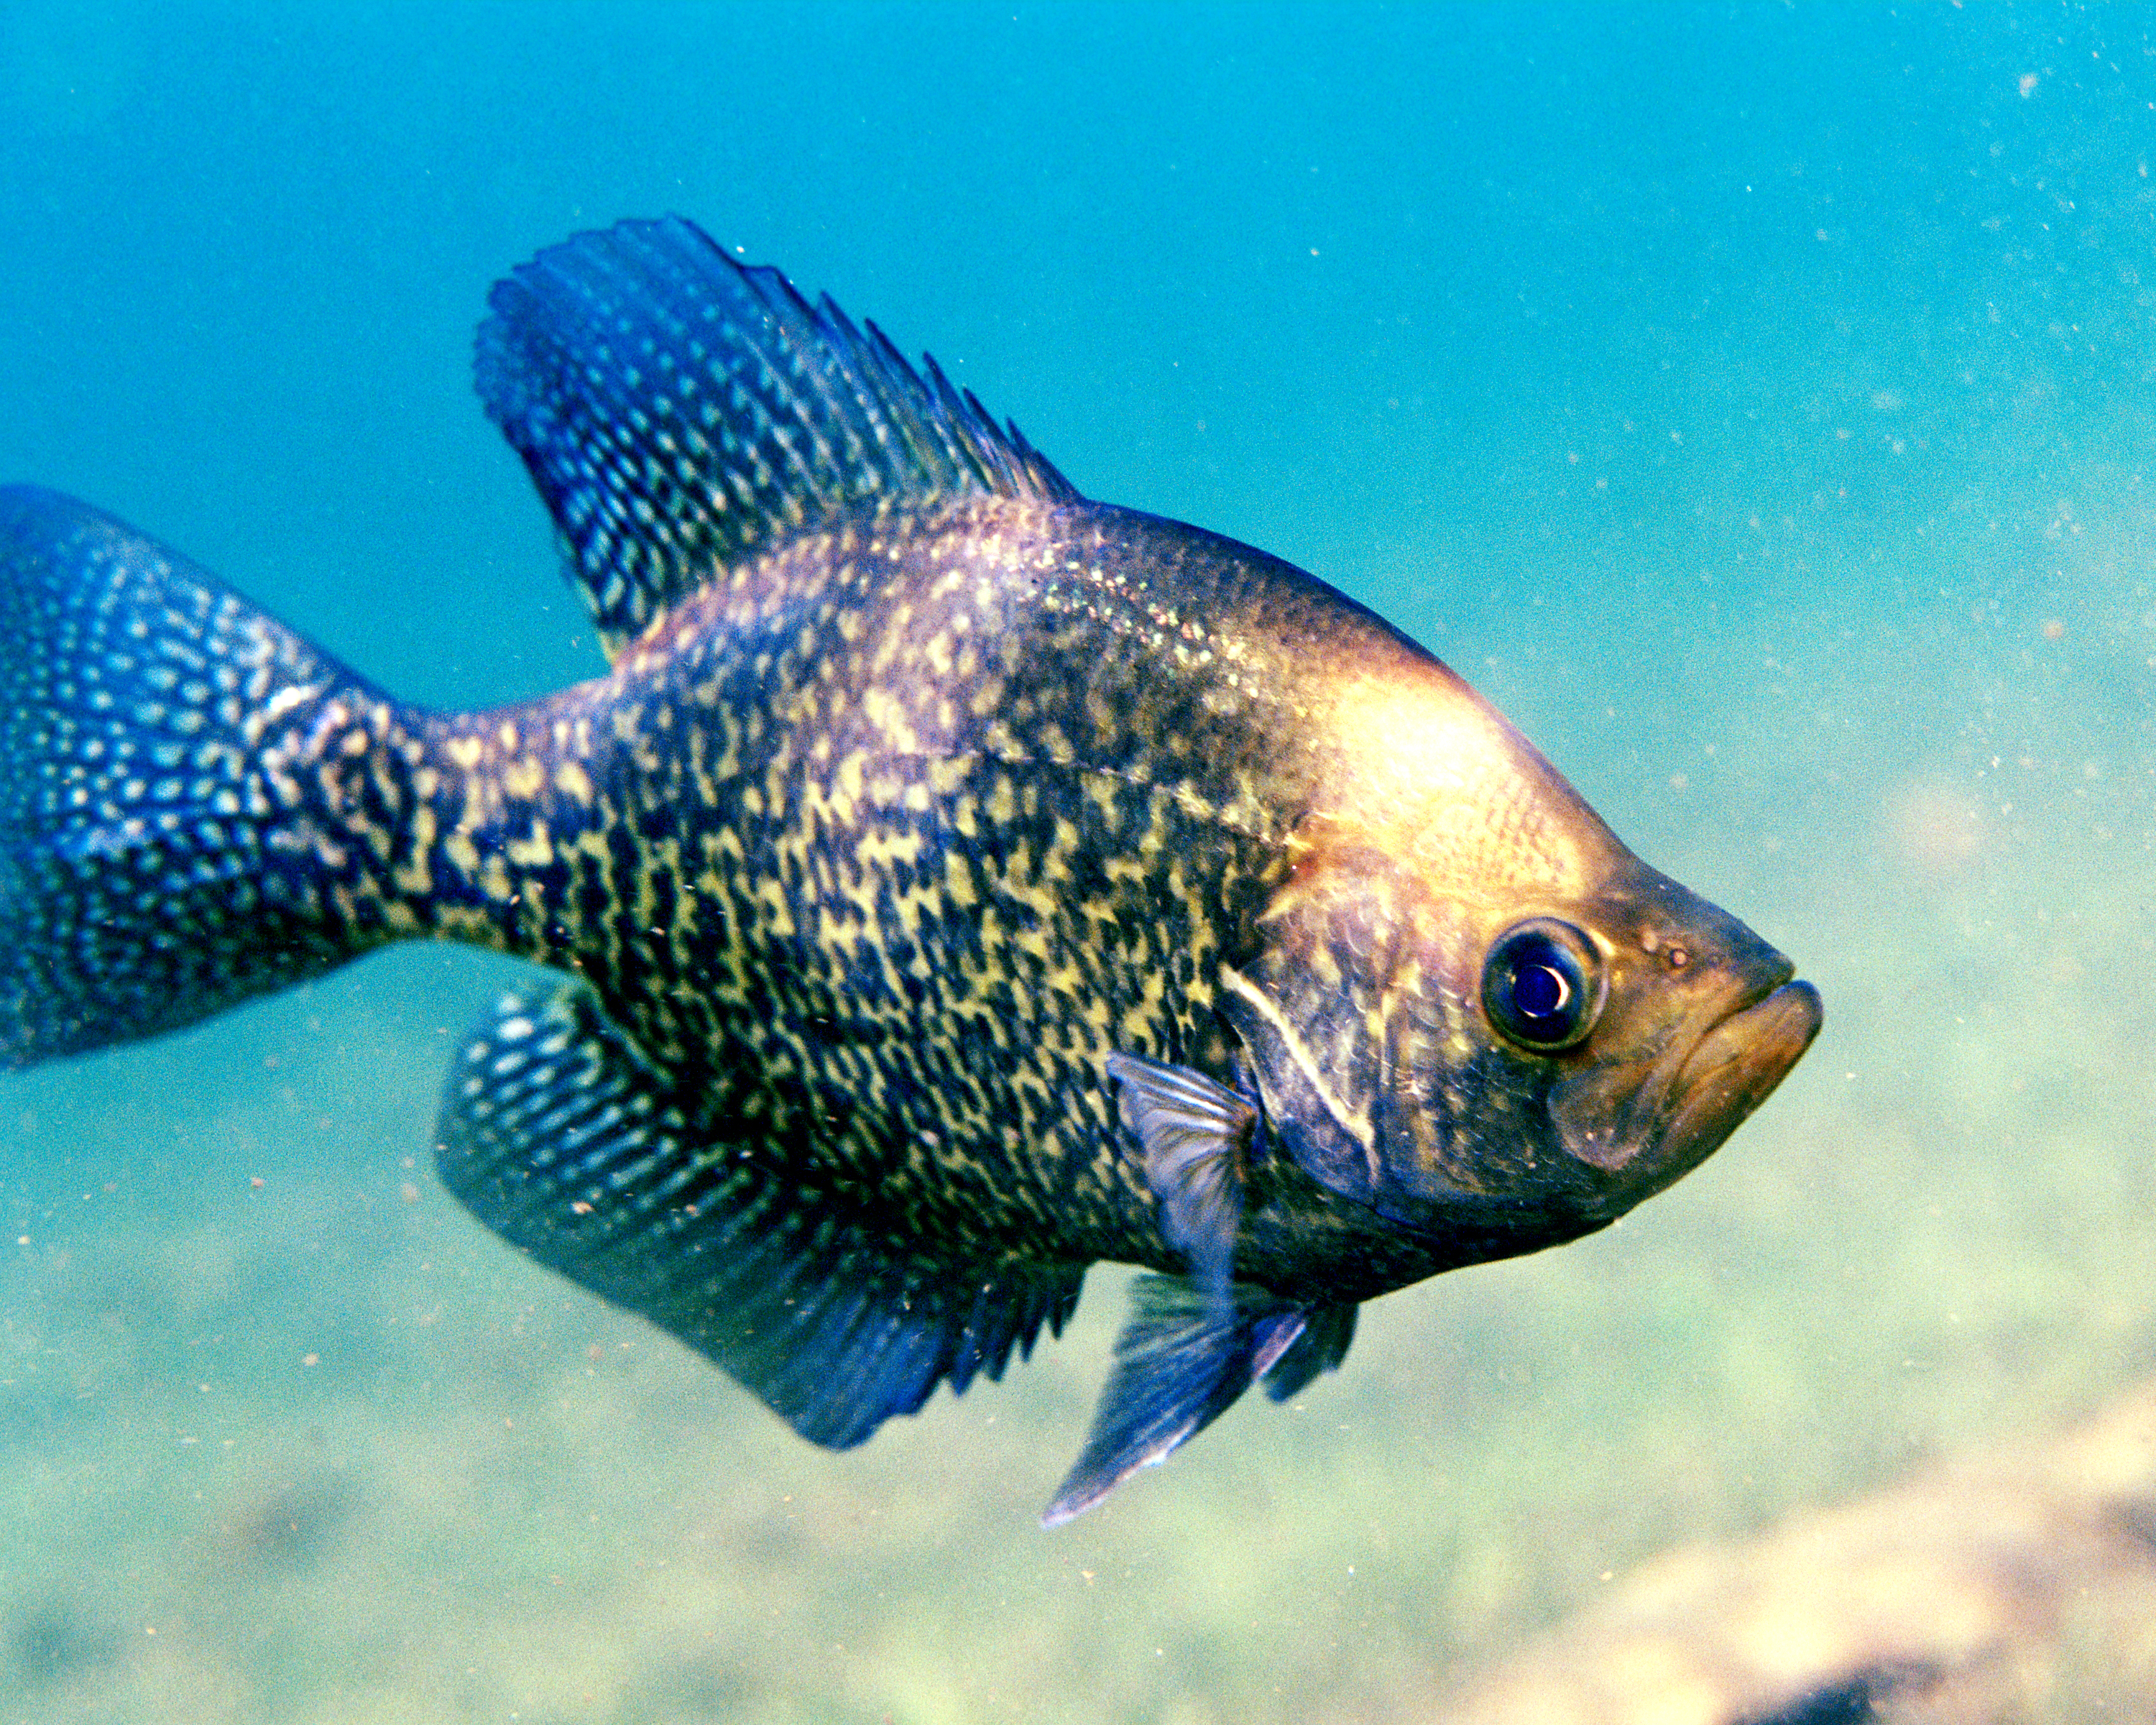 Black crappie wikiwand for What is a crappie fish